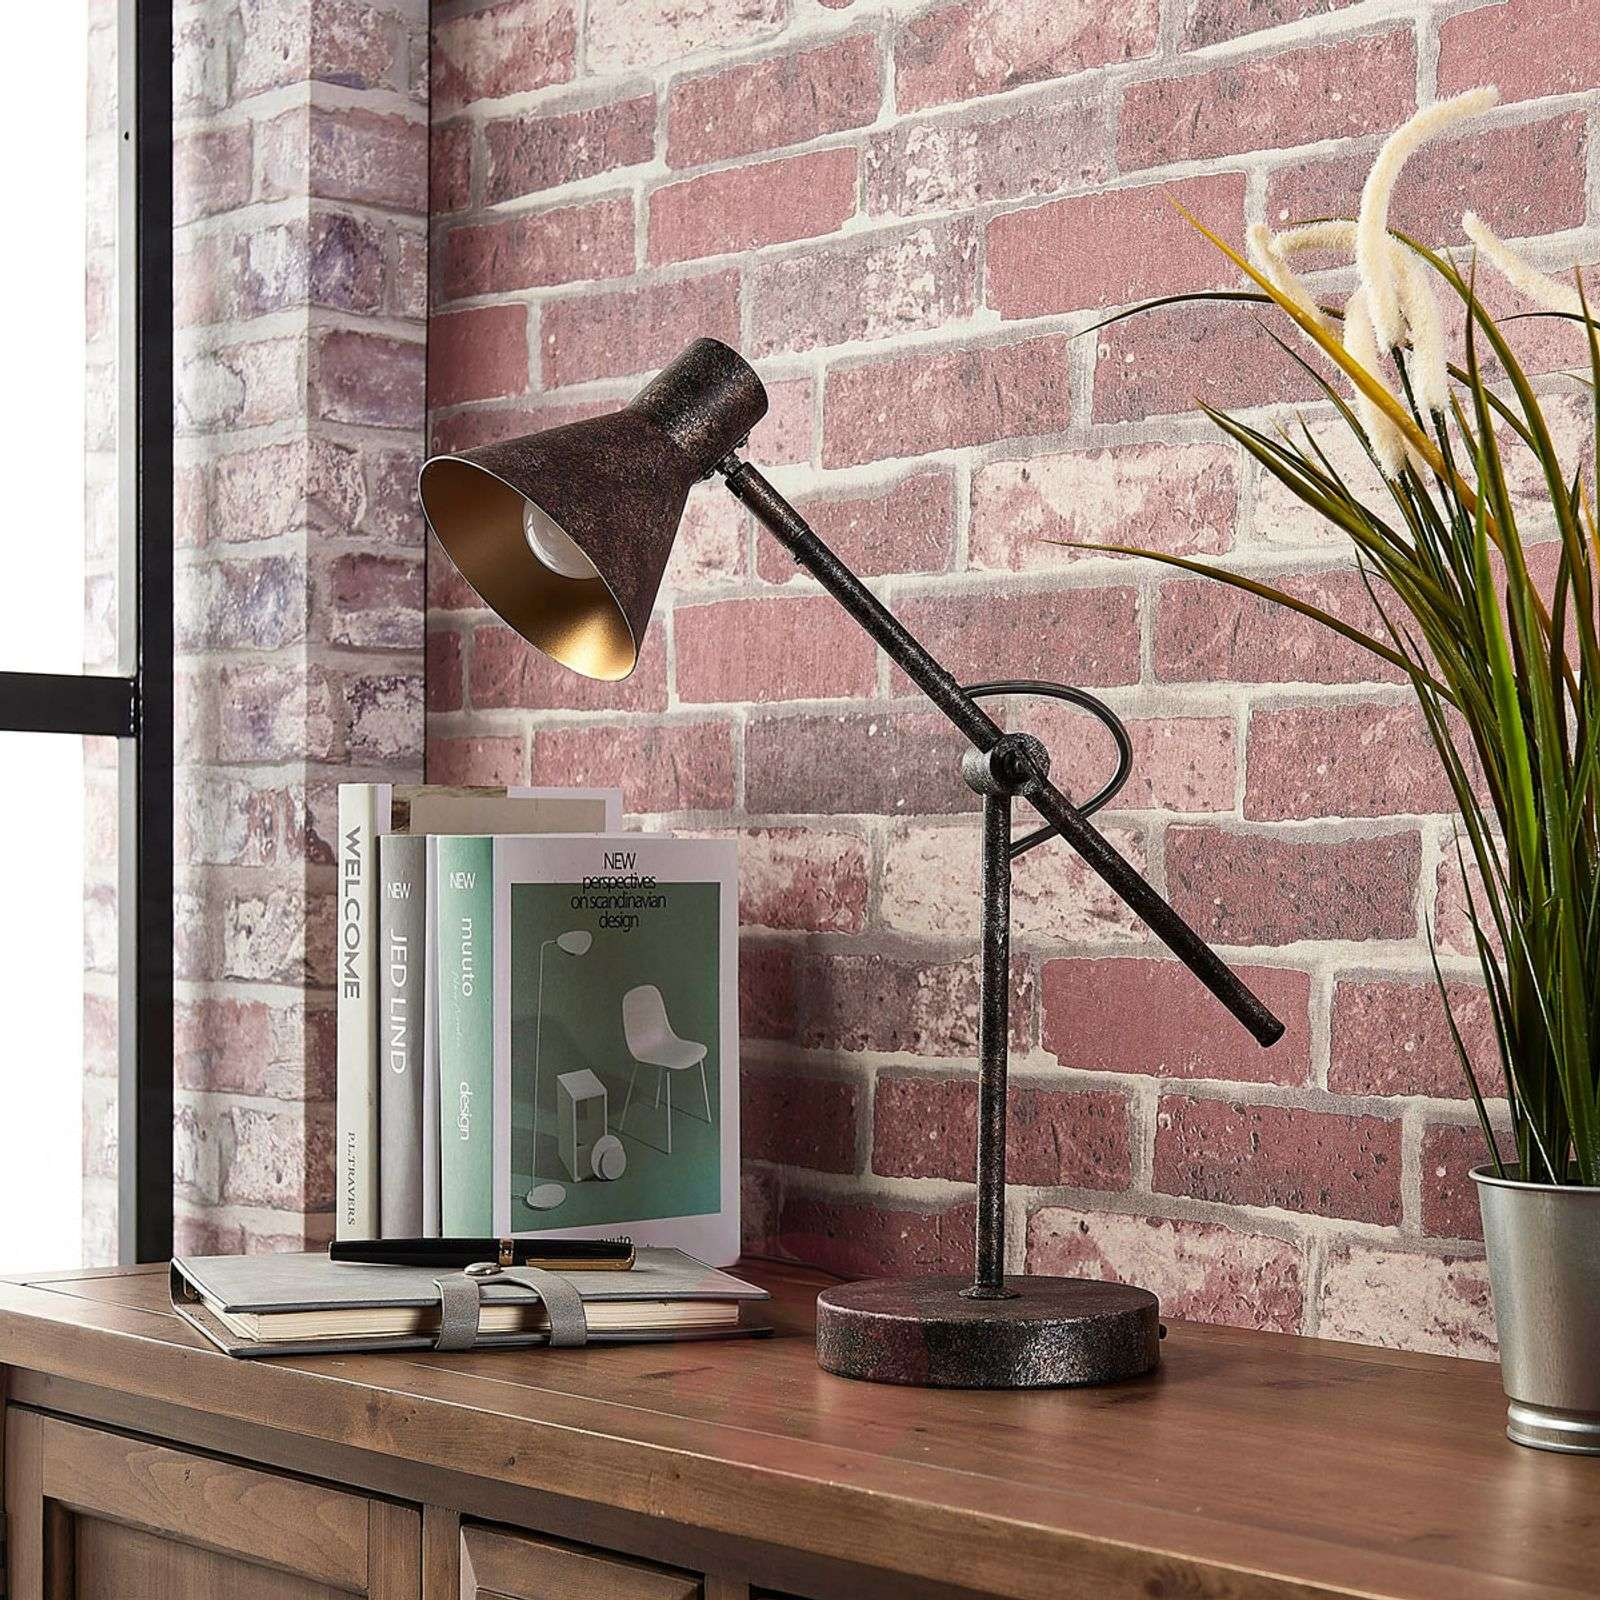 Rust-coloured LED table lamp Zera, Easydim-9621544-02